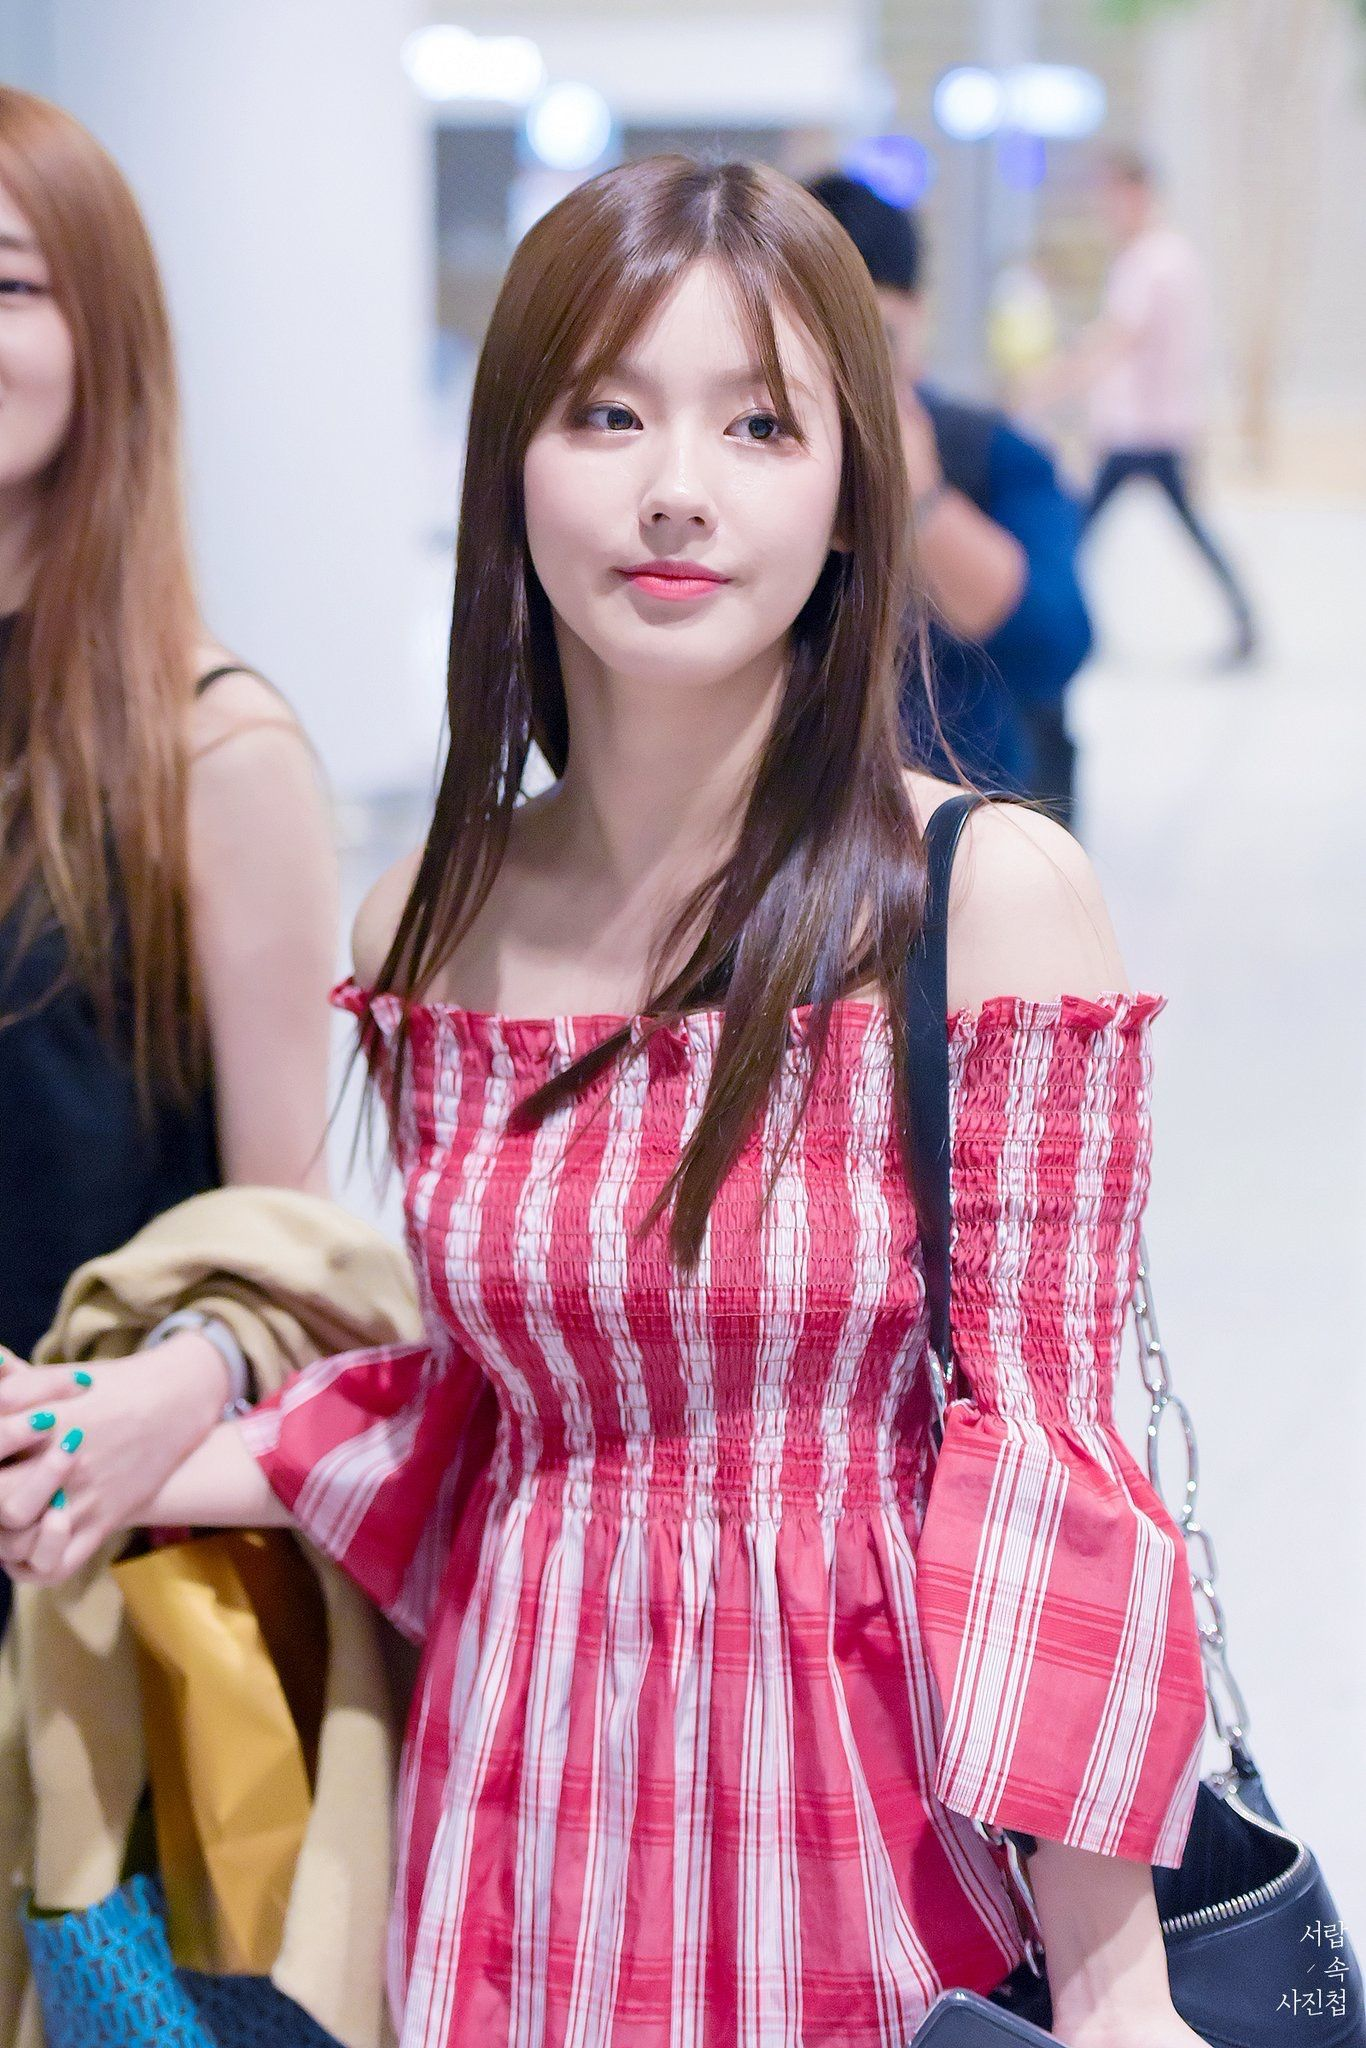 Red Plaid Off Shoulder Blouse Miyeon G I Dle K Fashion At Fashionchingu Fashion Kpop Fashion Fall Fashion Inspo